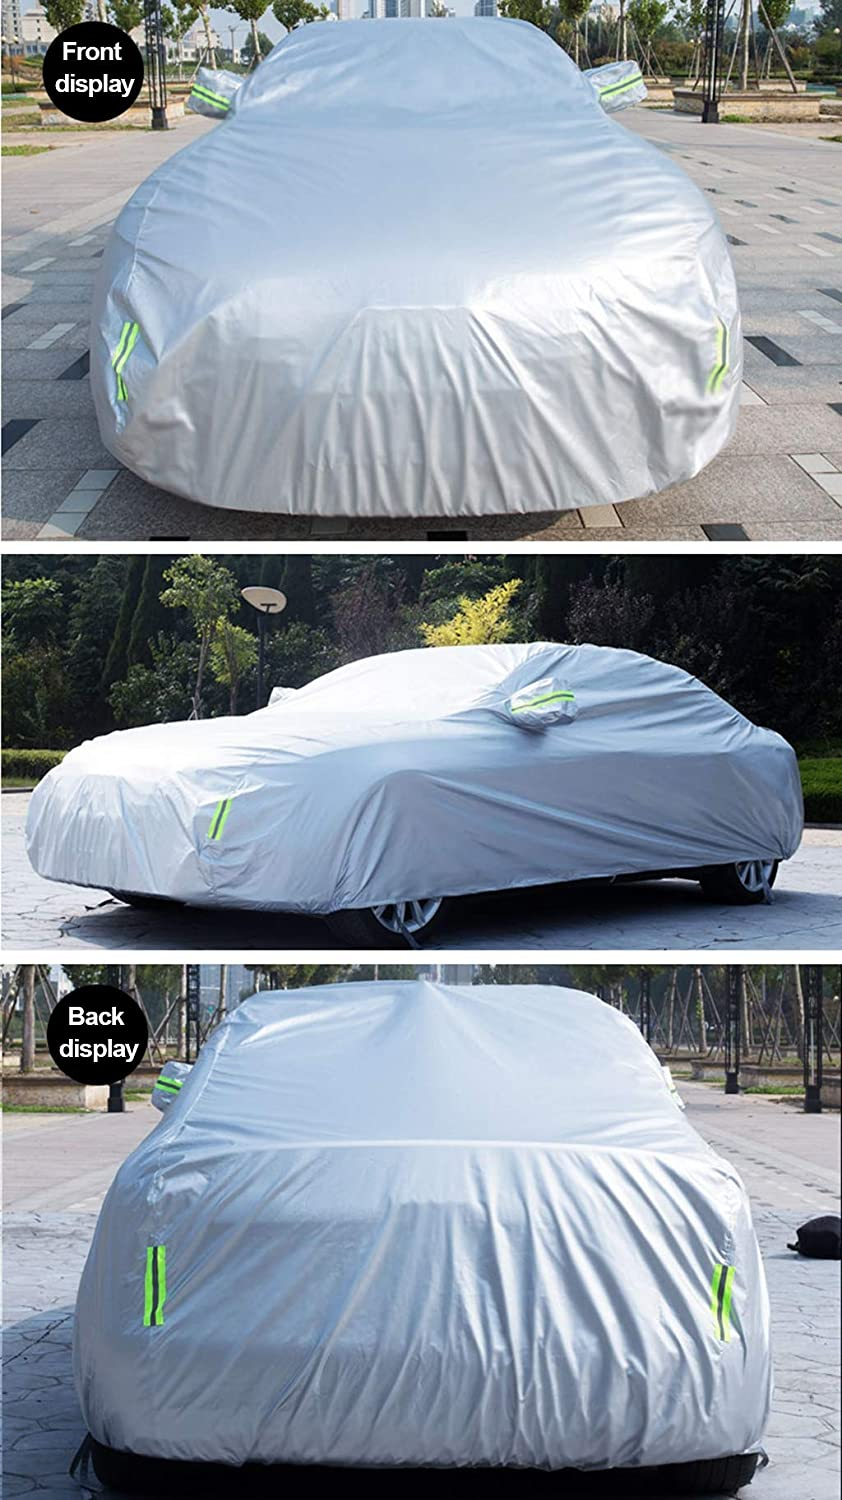 Car Cover Works With BMW M Series Car Cover,All Weather Waterproof Protection From Rain Dust Wind Sun UV Indoor Outdoor Full Car Cover,Customizable